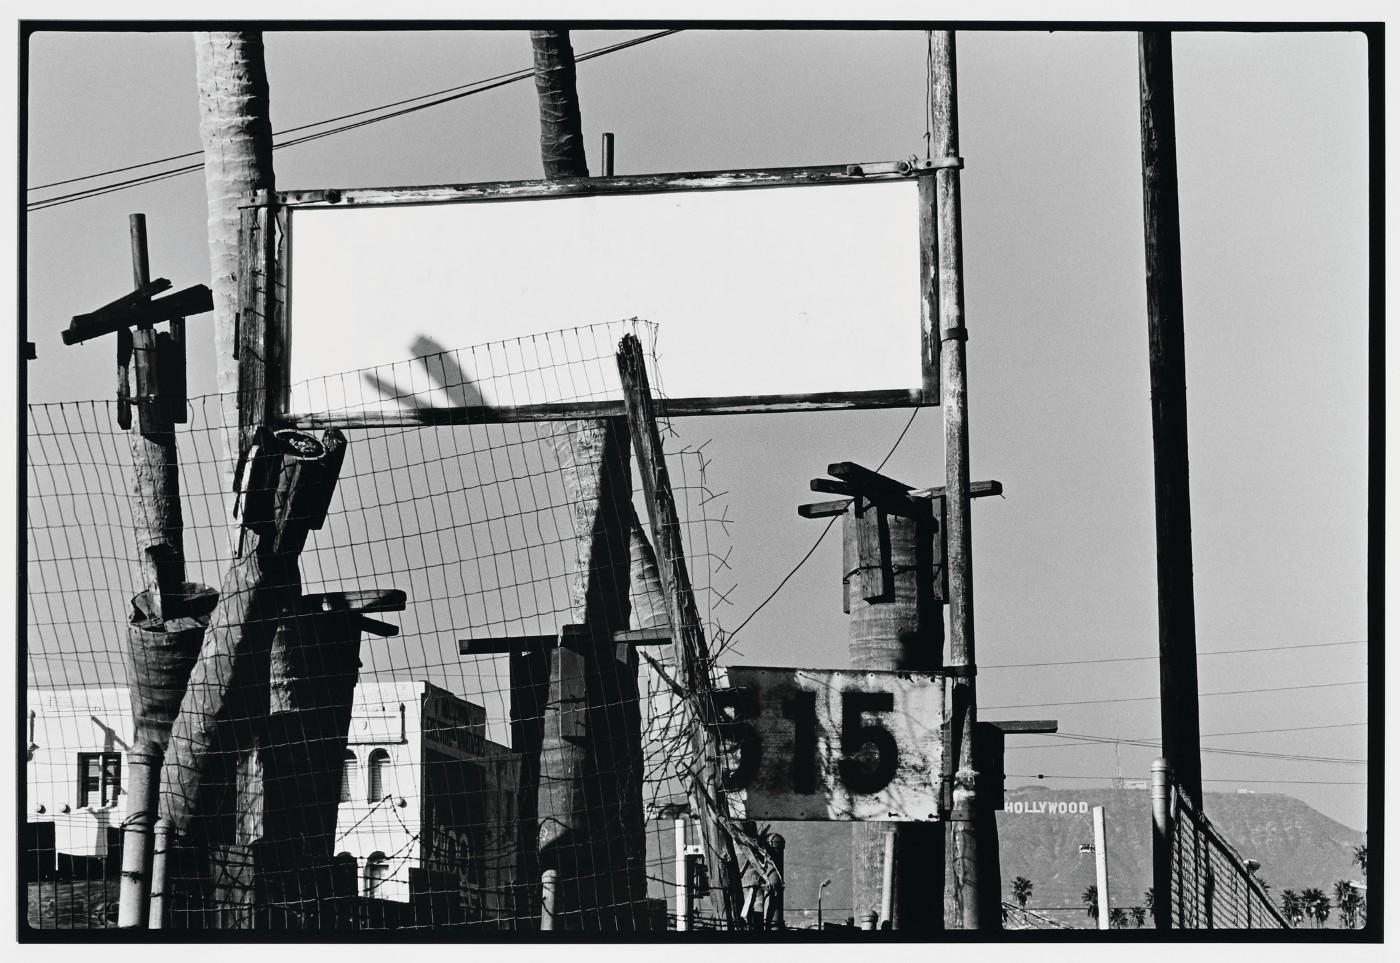 Robert Rauschenberg, Los Angeles, California, 1981